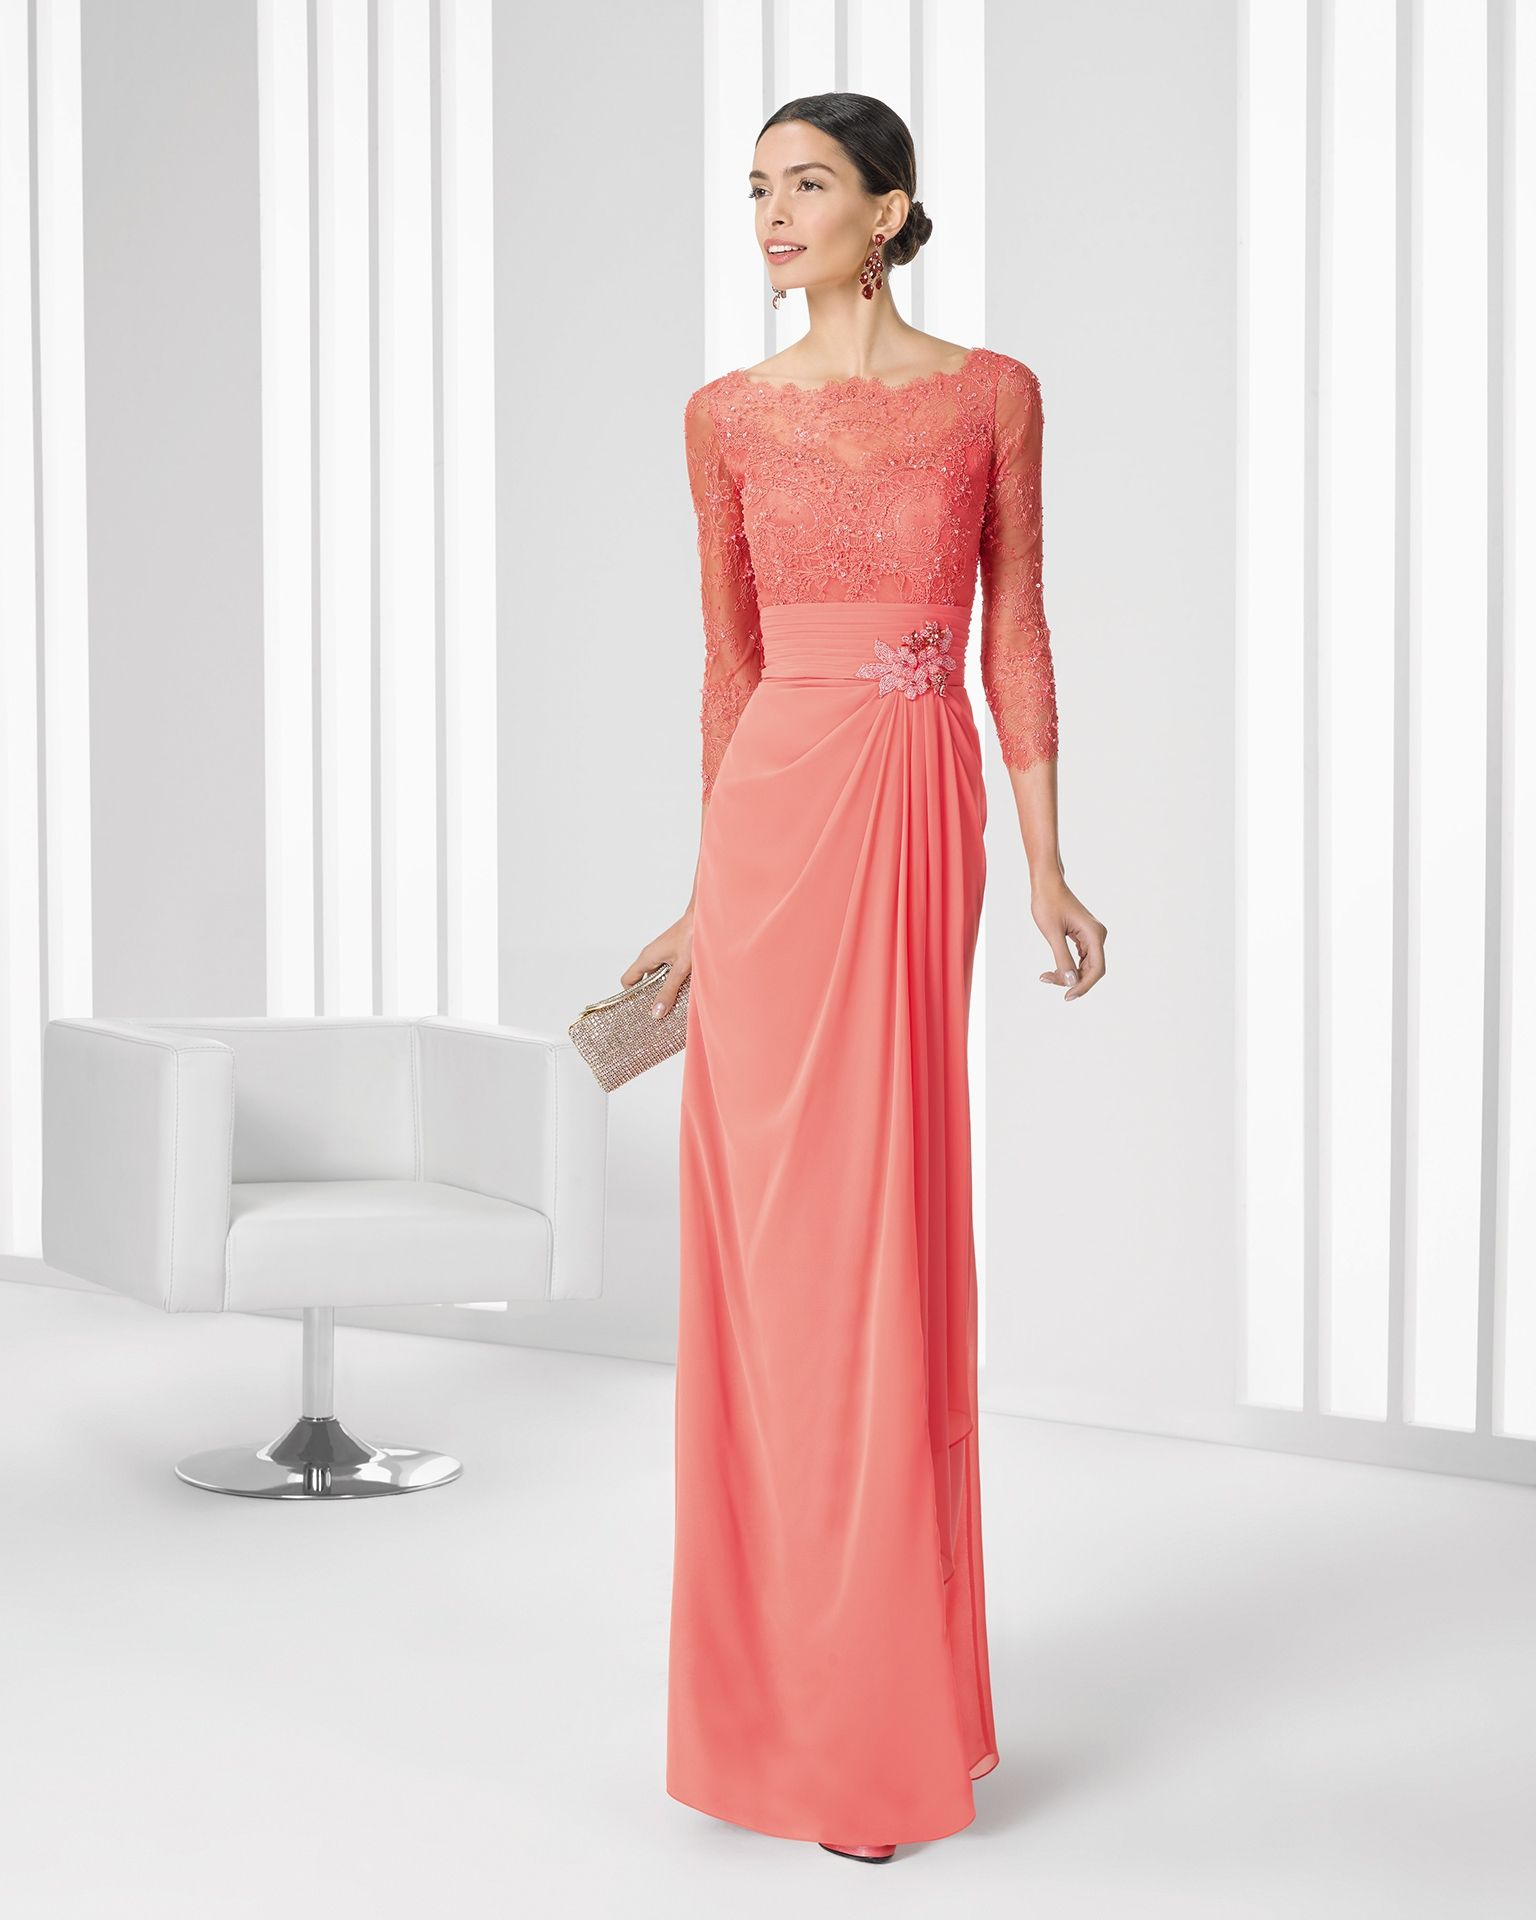 2016 9T266 COCKTAIL ROSA CLARA | Long Dresses | Pinterest | Rosa ...